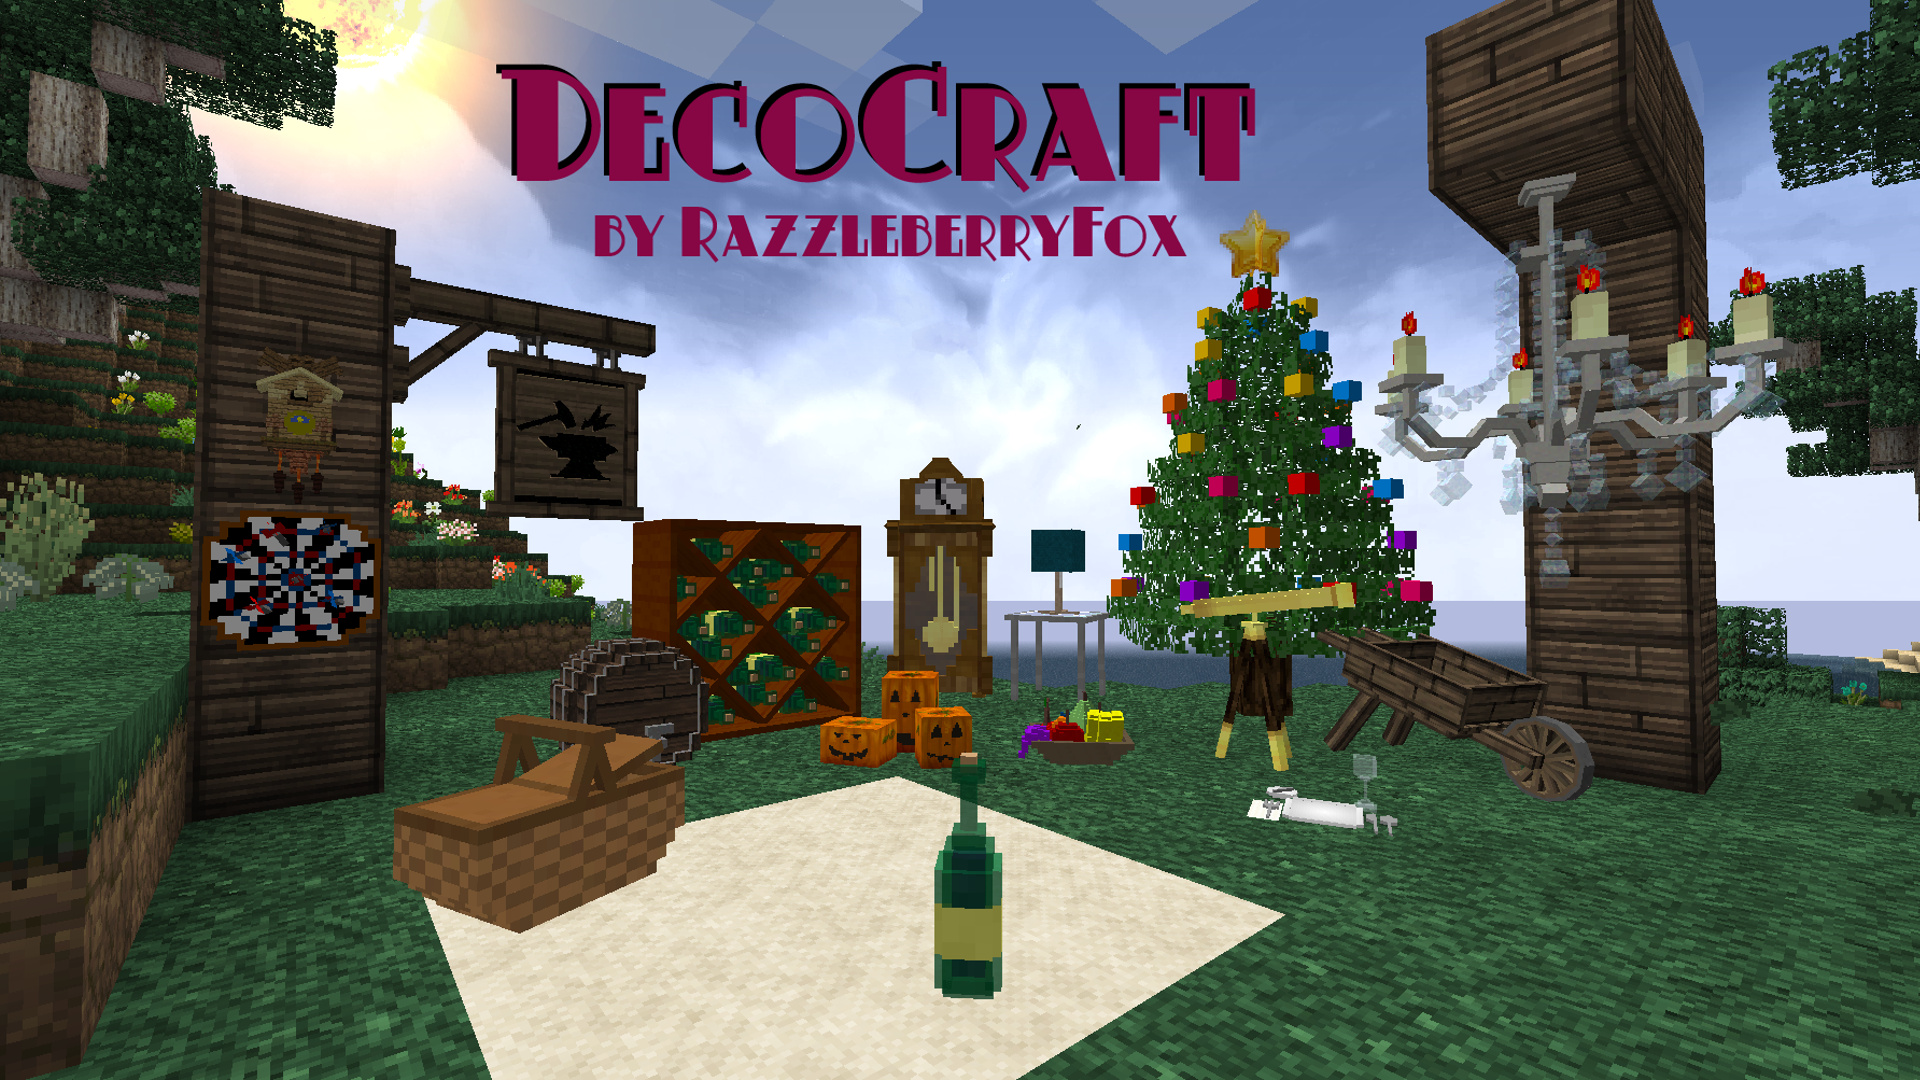 Decocraft mod for Minecraft modernes haus download 1 7 2